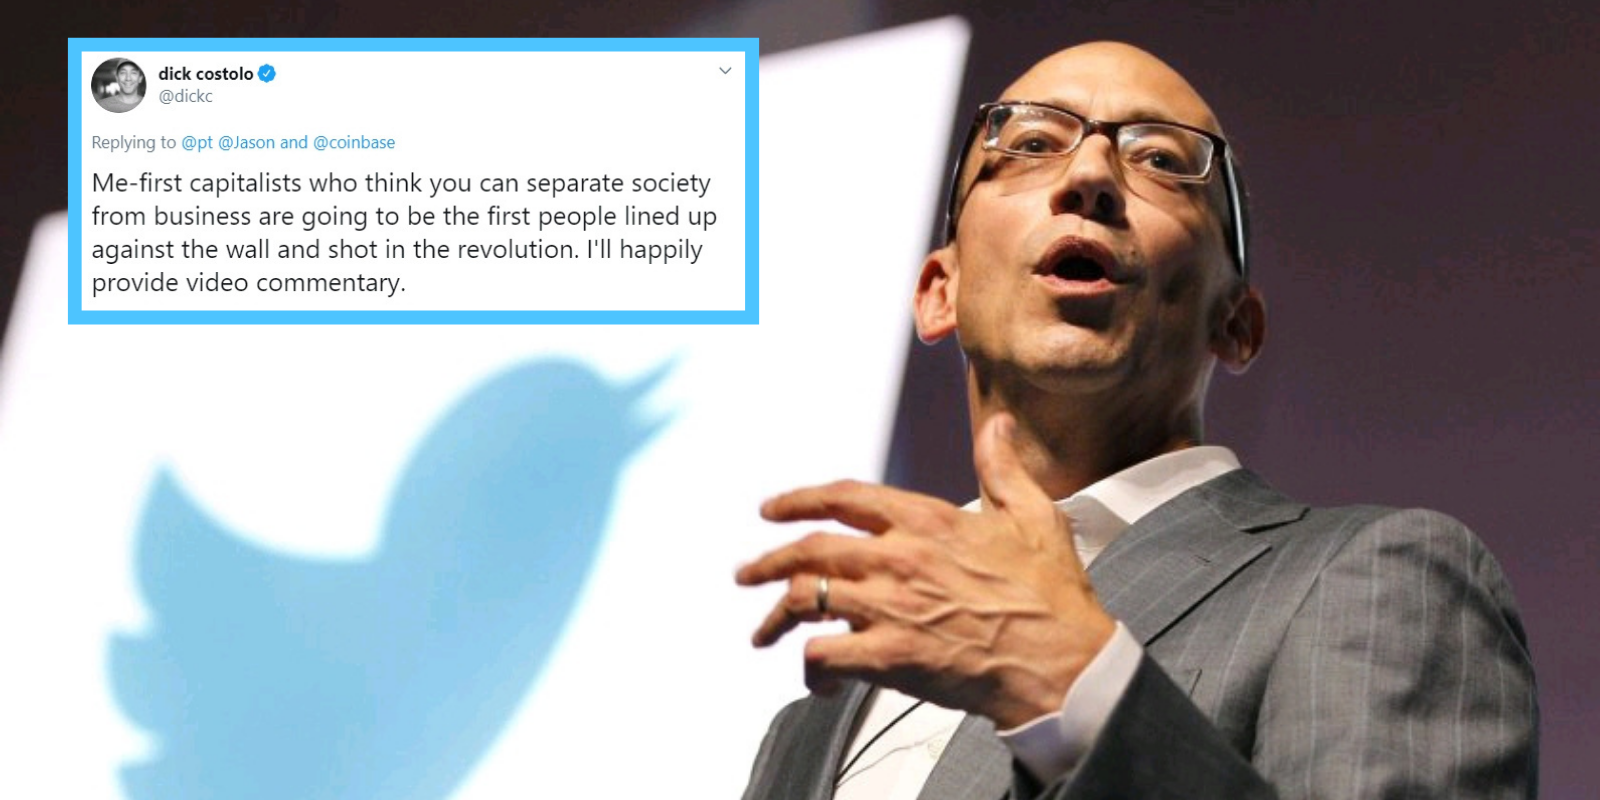 Former Twitter CEO fantasizes about executing 'capitalists'